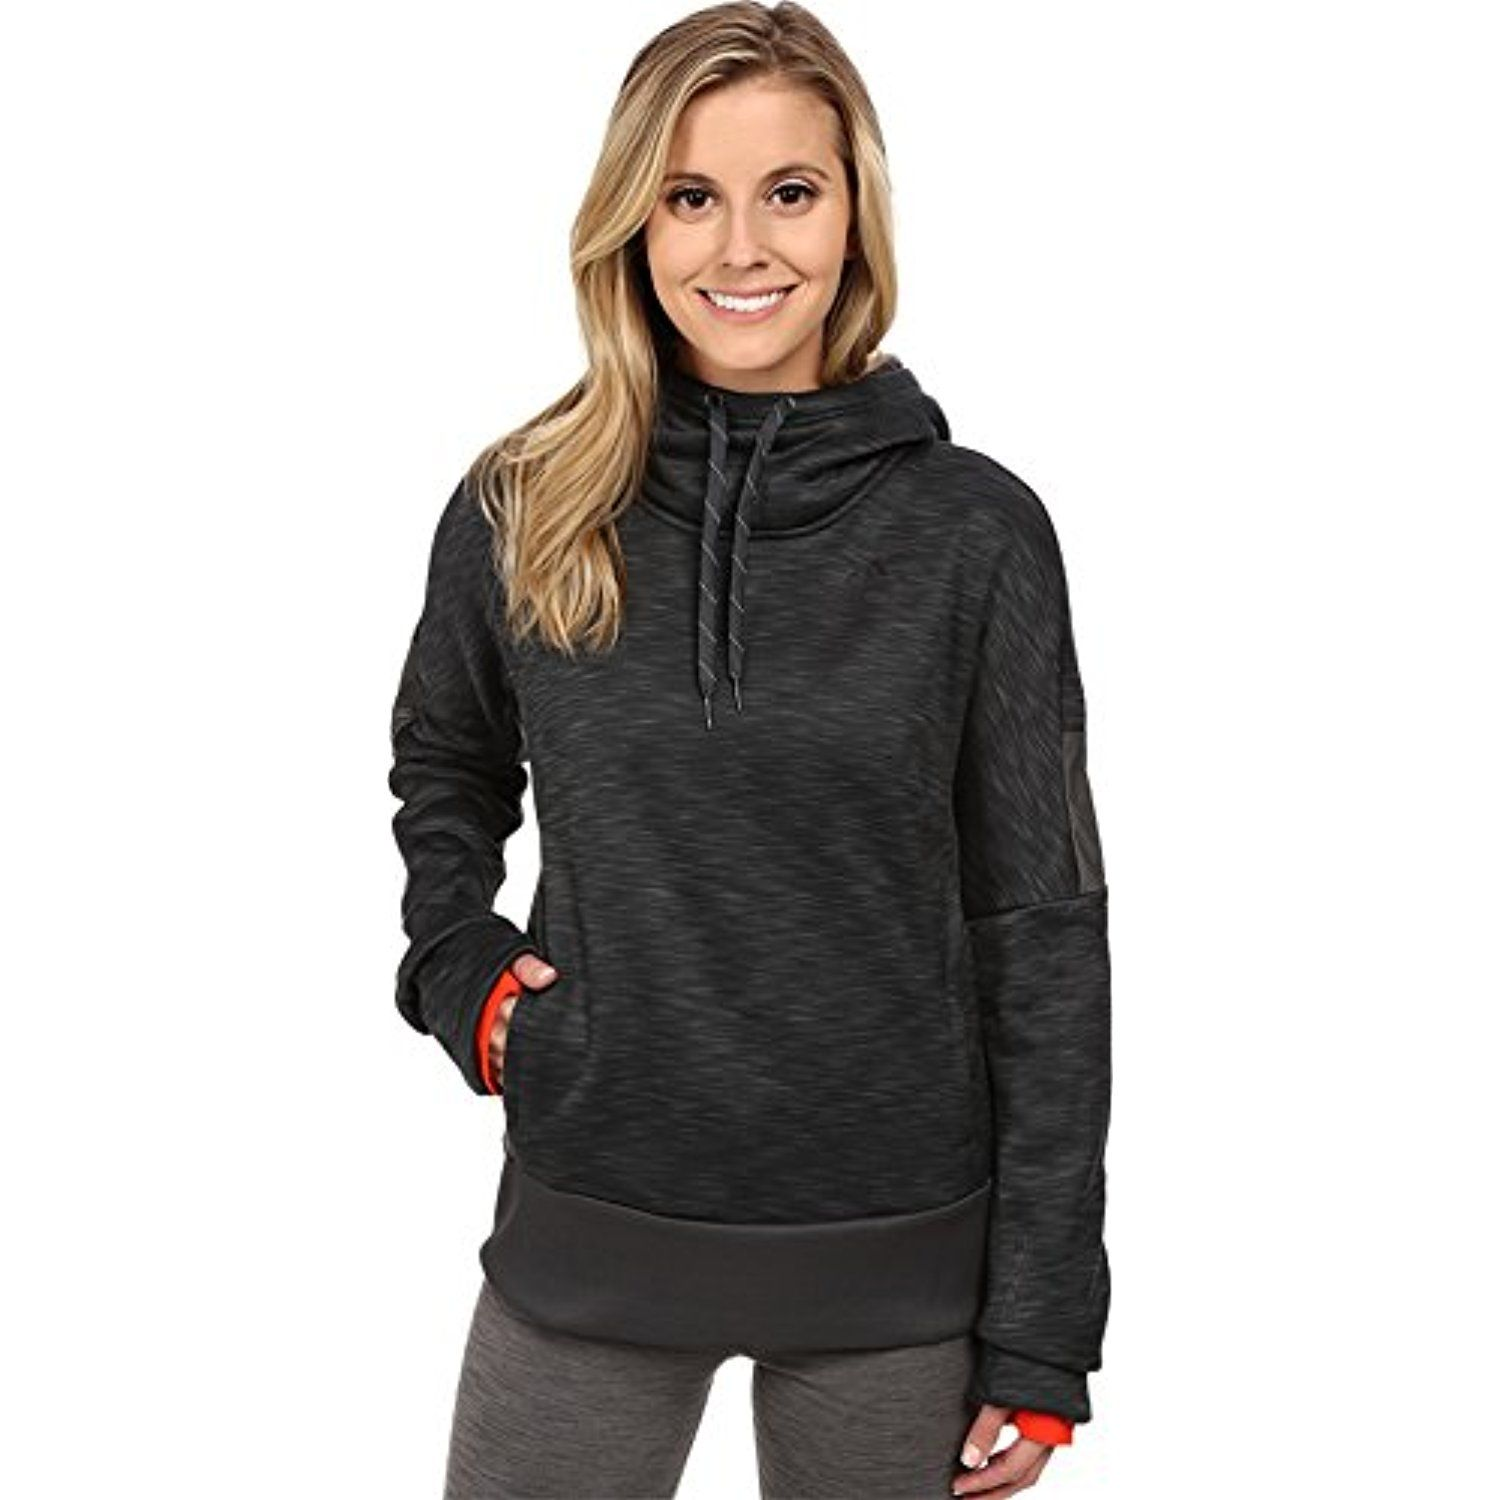 Predownload: Women S Adidas Beyond The Run Climaheat Fleece Hoodie Be Sure To Check Out This Awesome Product This Is An Affiliate L Adidas Women Hoodies Fleece Hoodie [ 1500 x 1500 Pixel ]